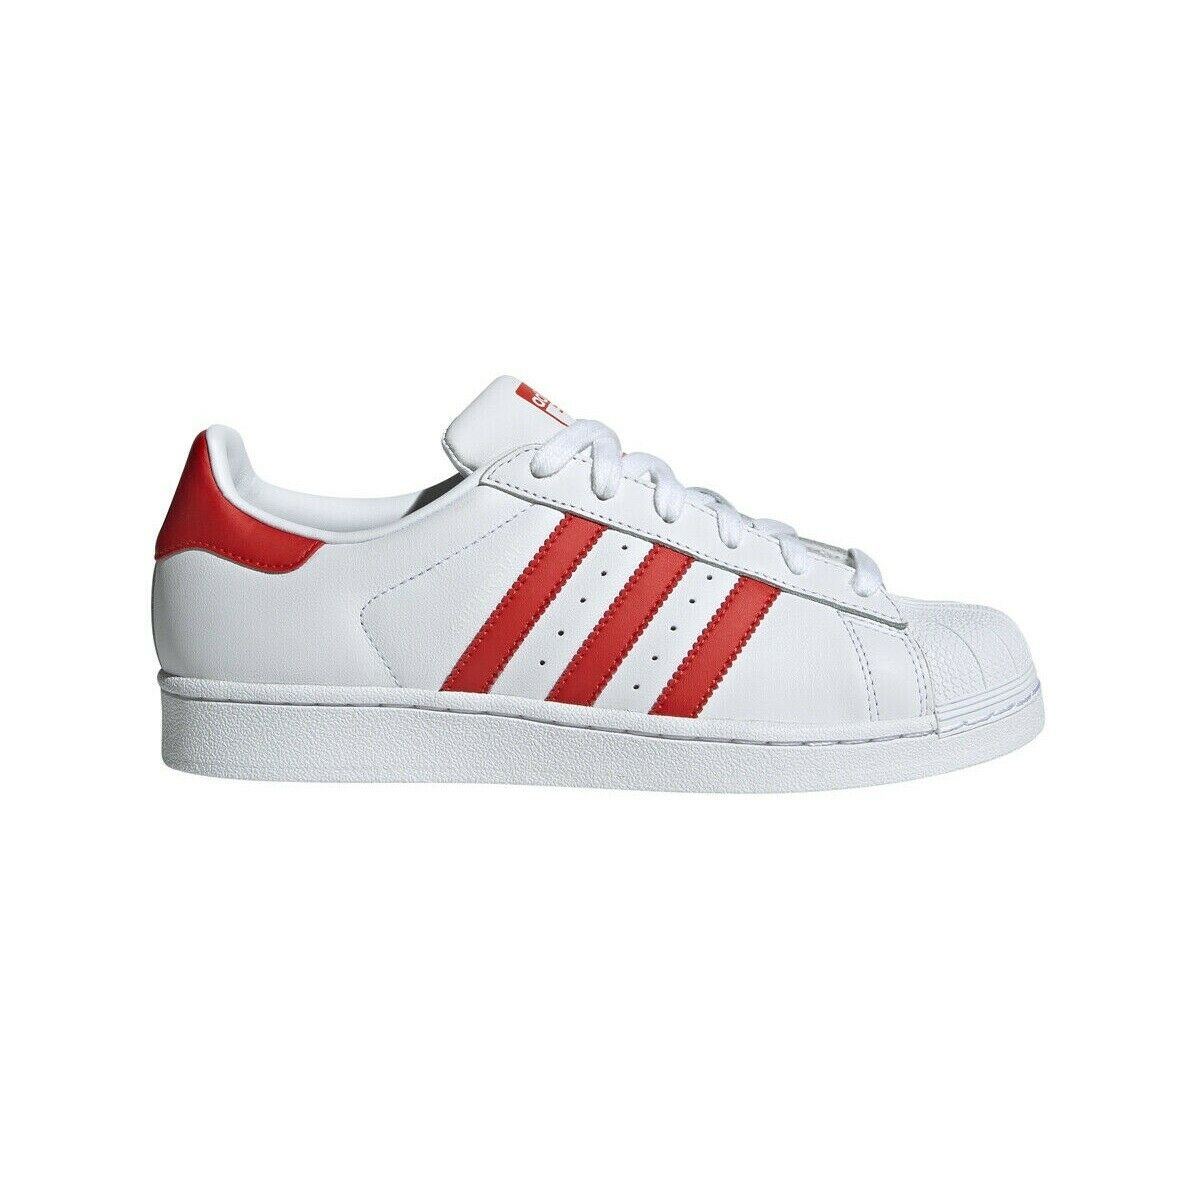 New Adidas Women's Originals Superstar Shoes (CM8413) White//Active Red-Black